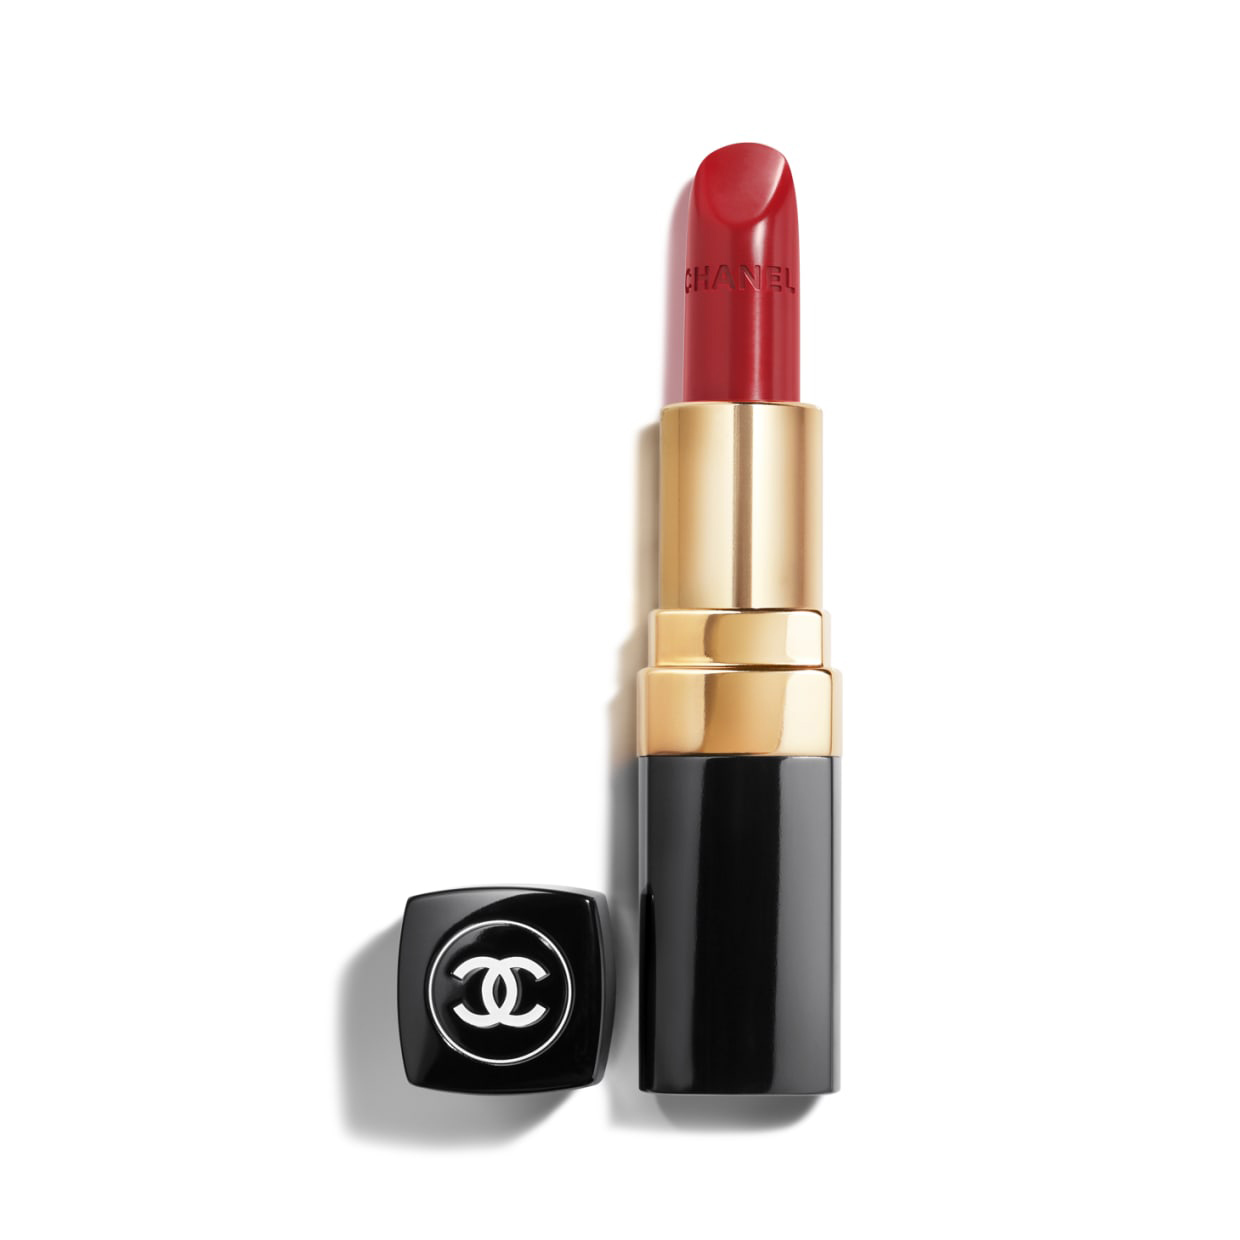 Chanel Rouge Coco Ultra Hydrating Lip Colour in Carmen